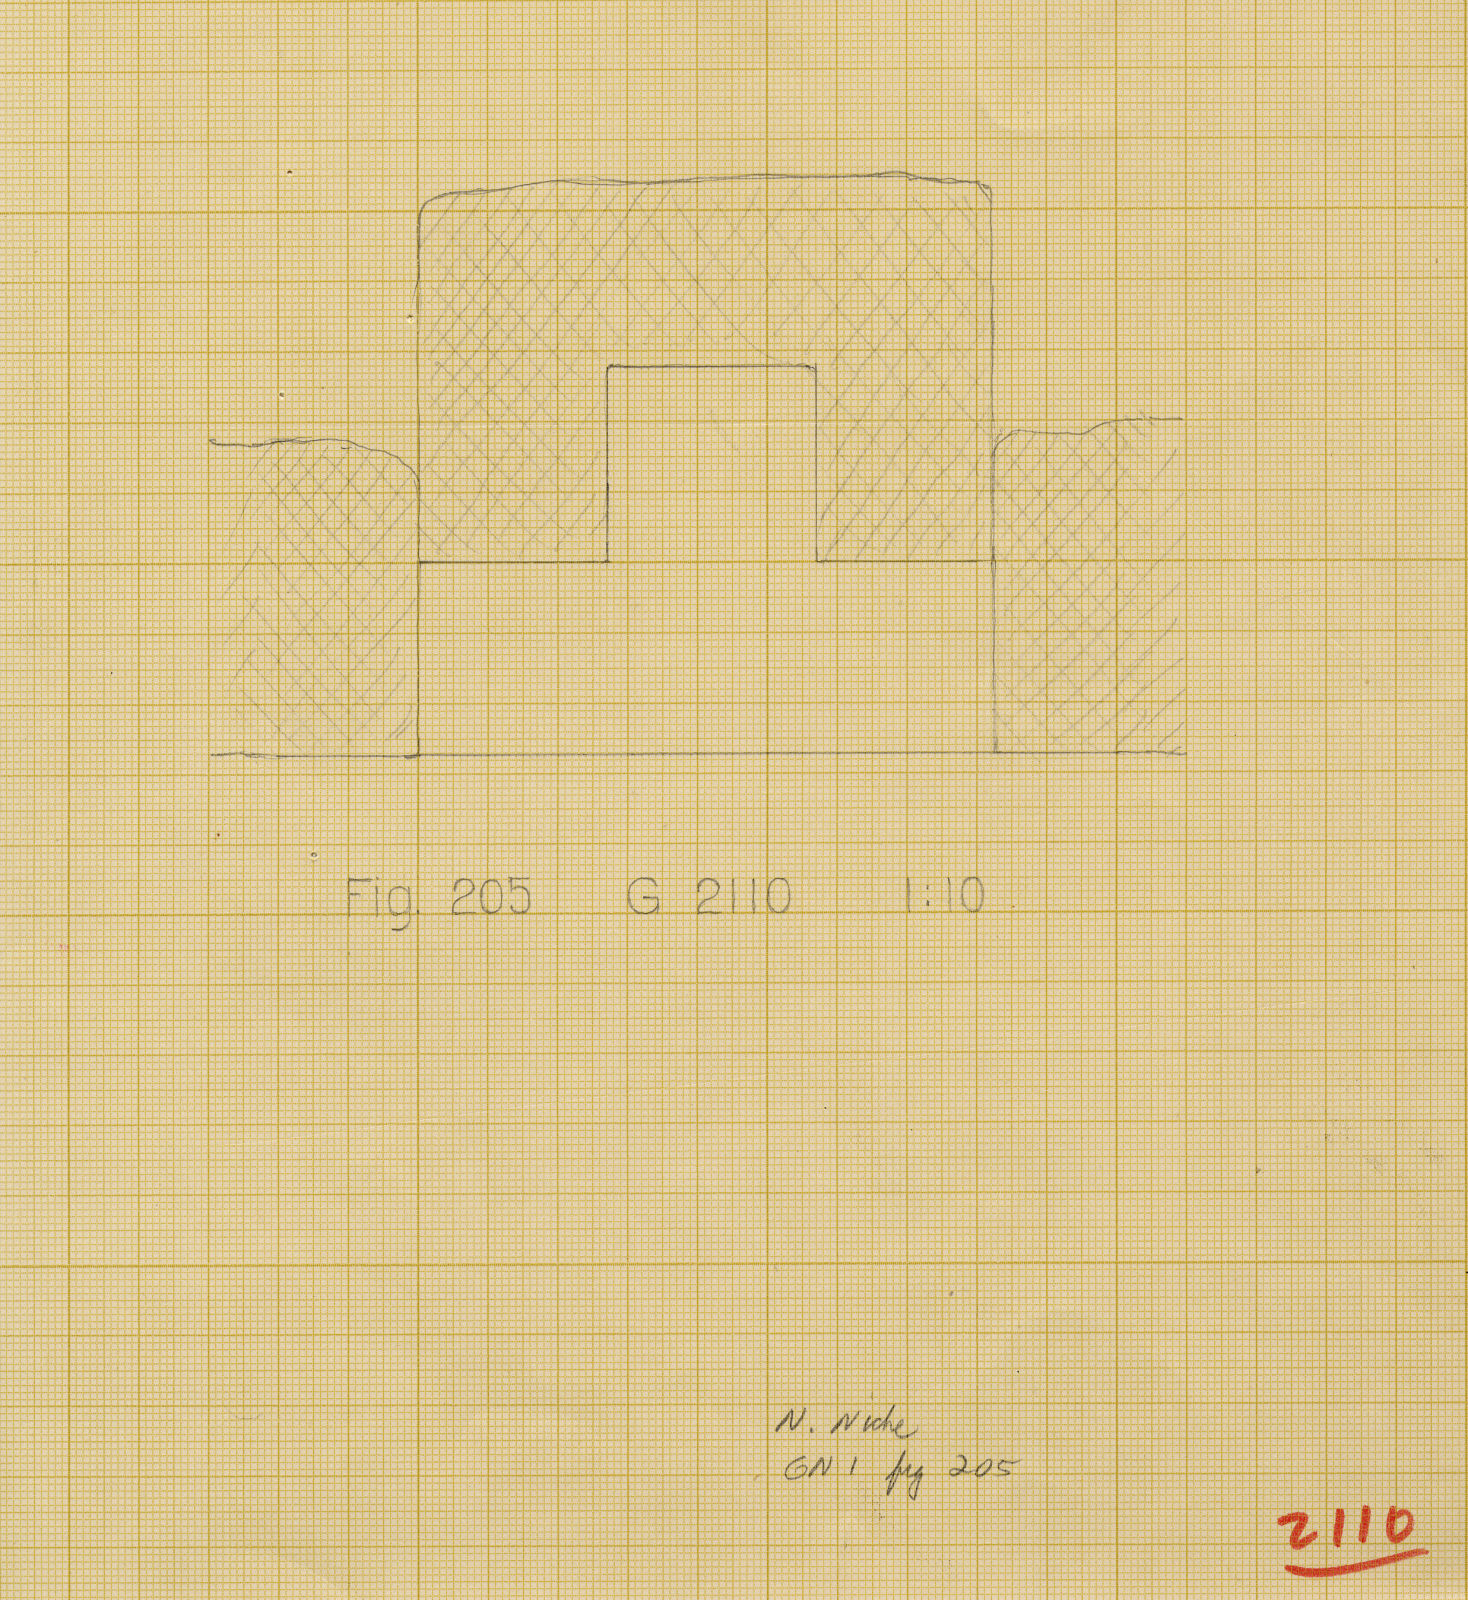 Maps and plans: G 2110, Plan of N niche